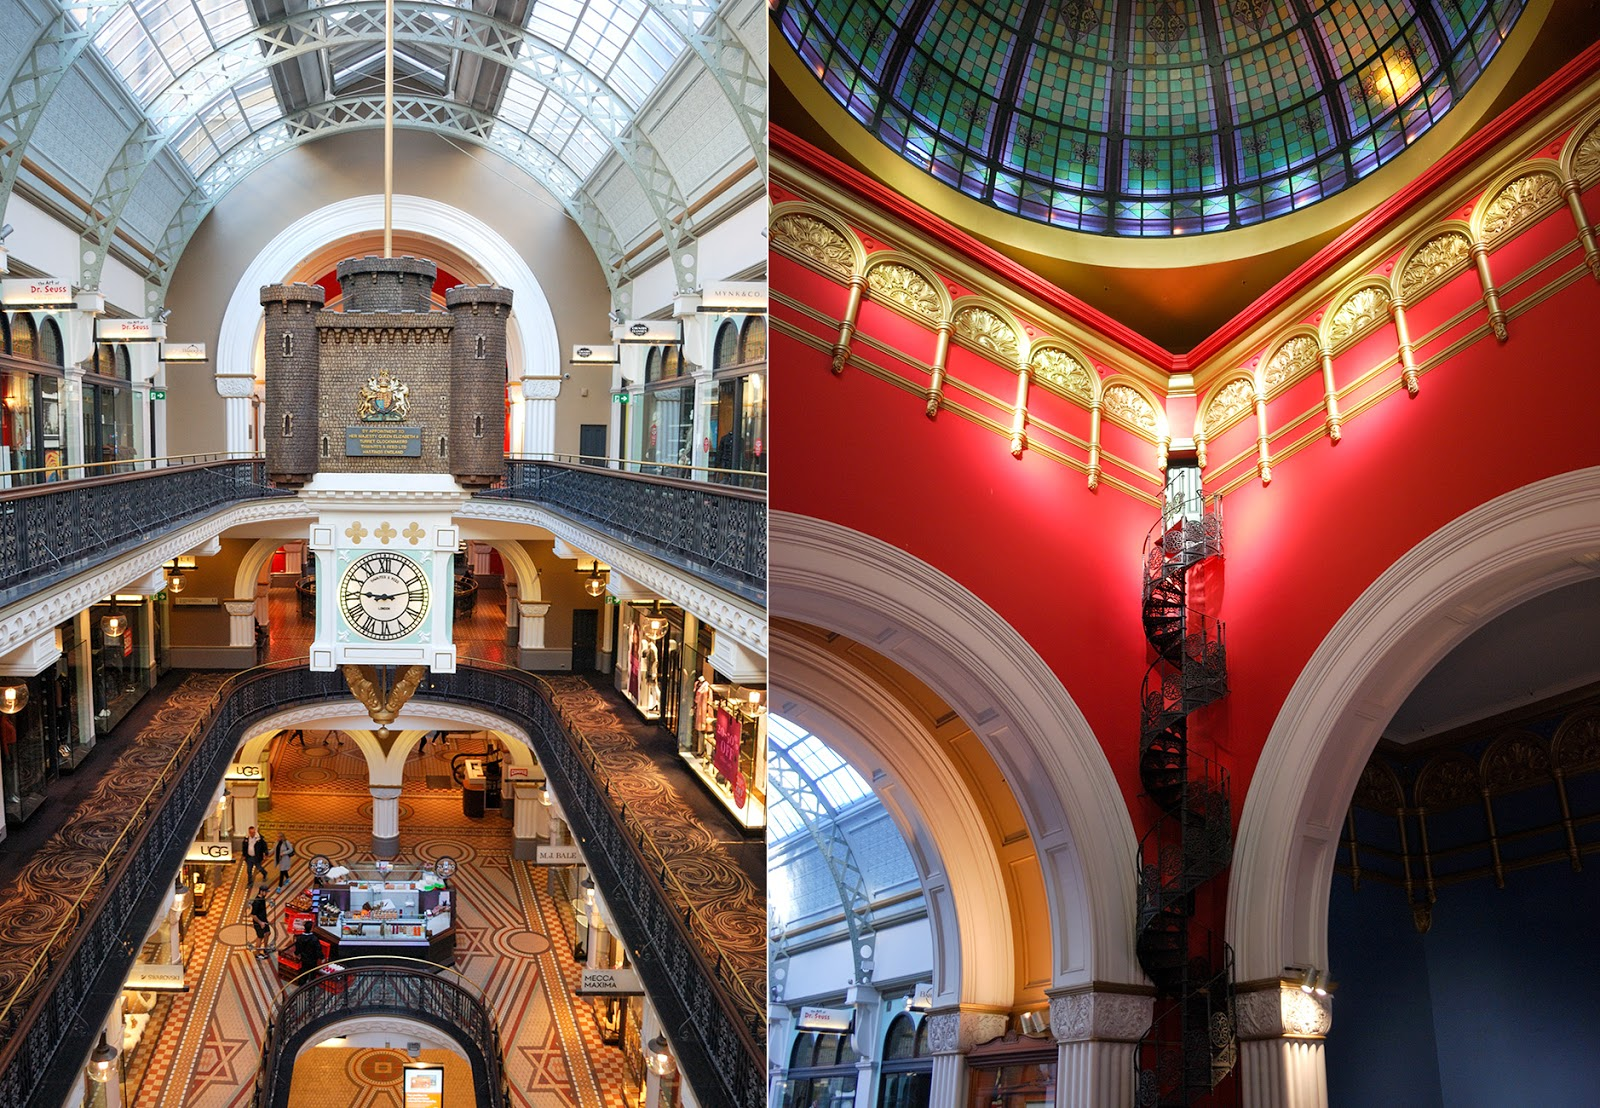 queen victoria building qvb sydney australia